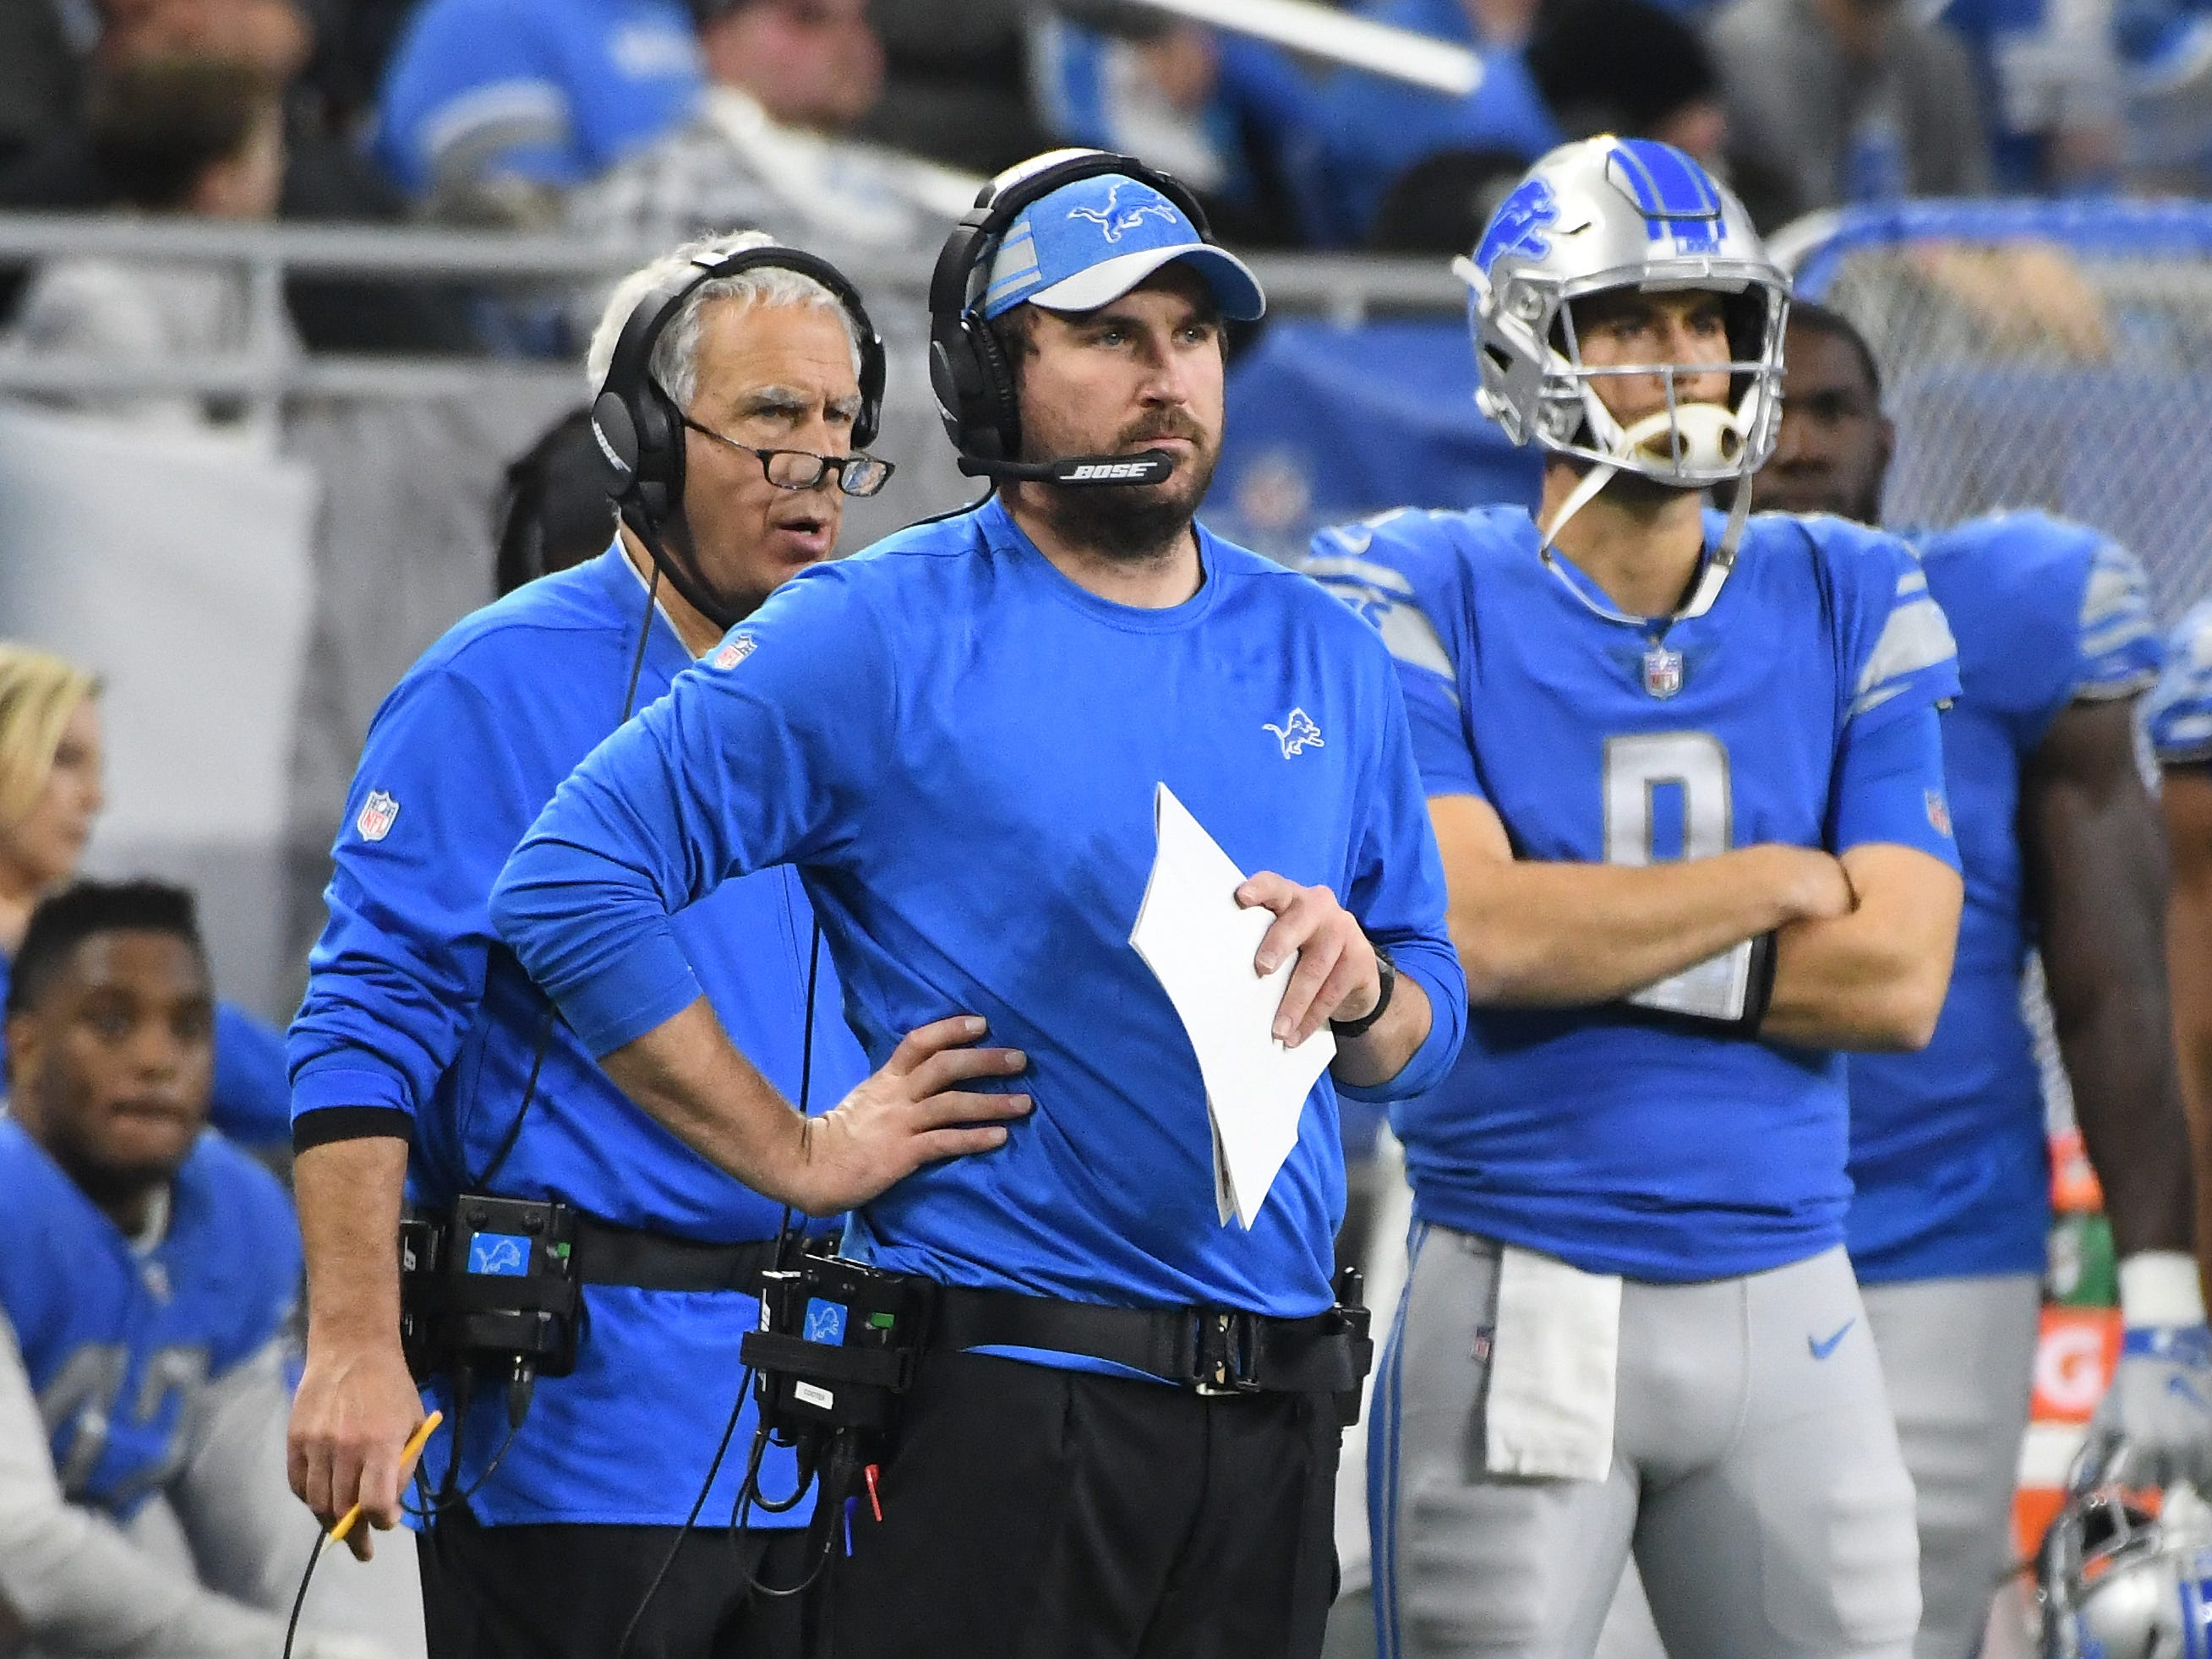 Lions offensive coordinator Jim Bob Cooter, with defensive coordinator Paul Pasqualoni and defensive line coach Bo Davis on the sidelines in the fourth quarter.